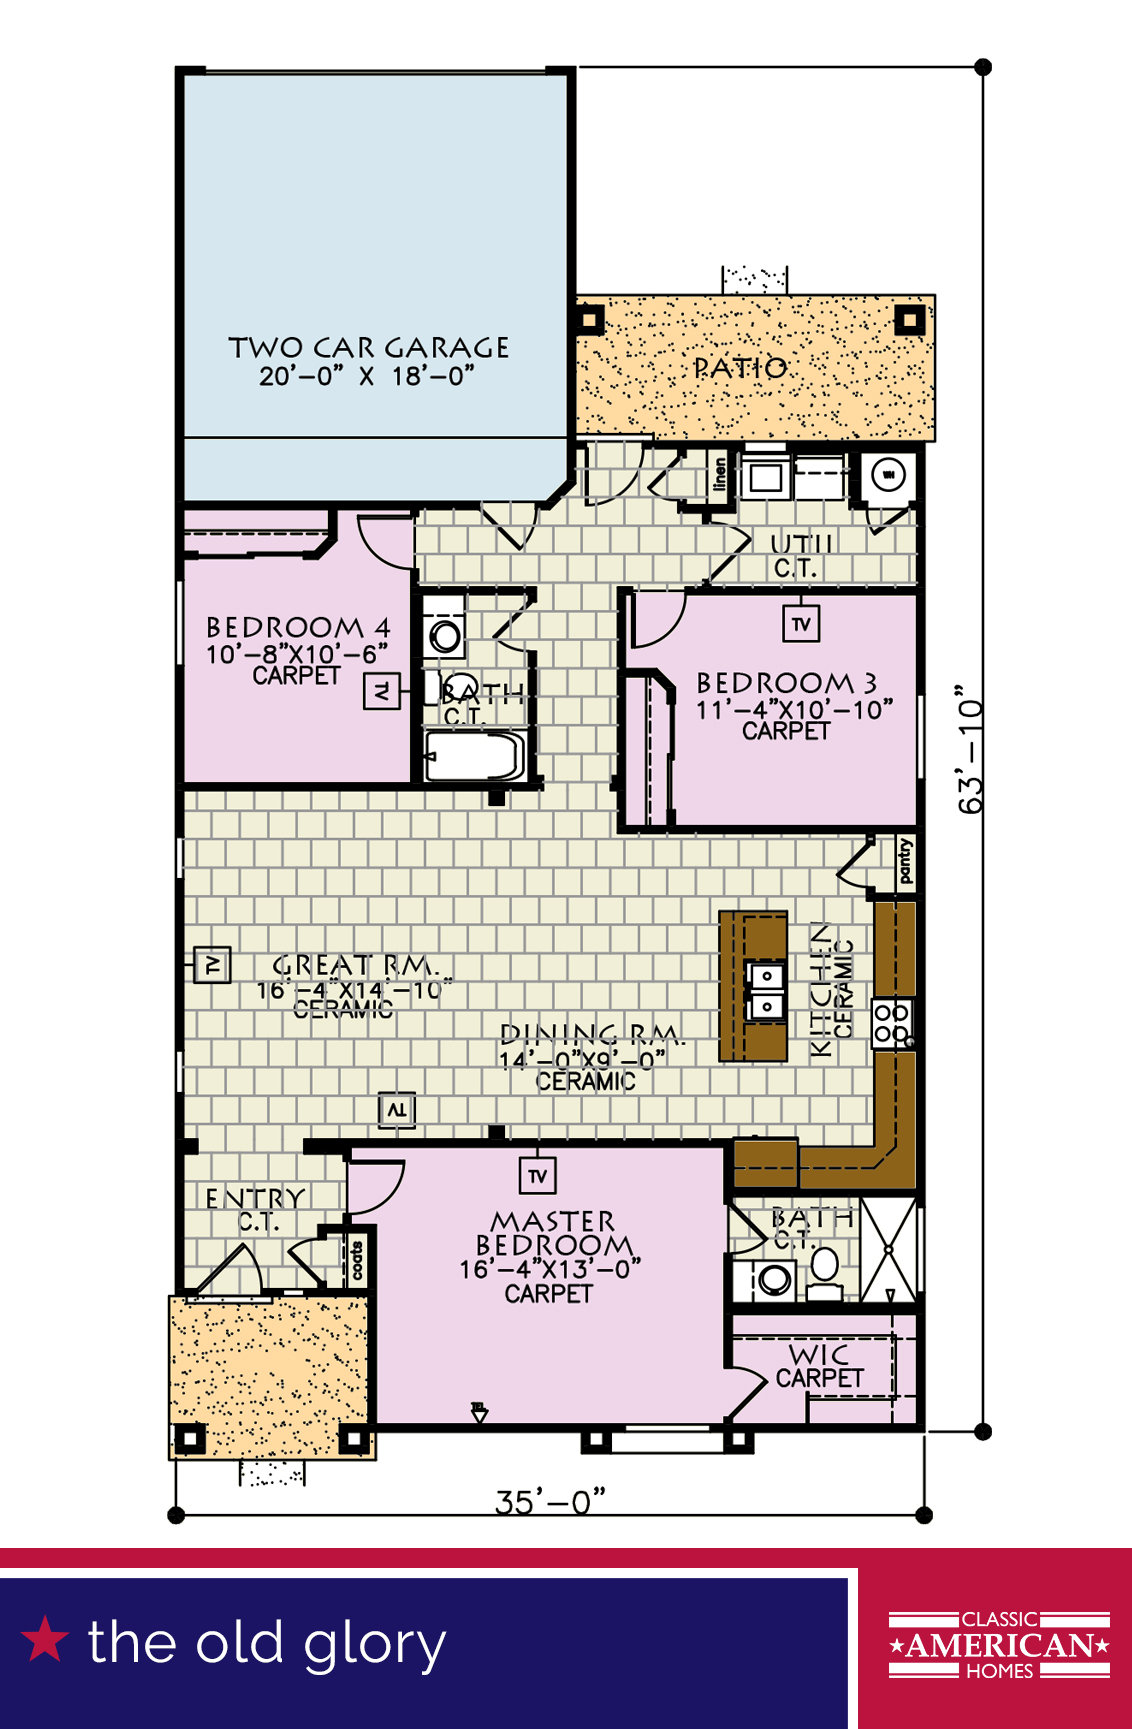 The old glory classic american homes builders in el paso for Classic american homes floor plans